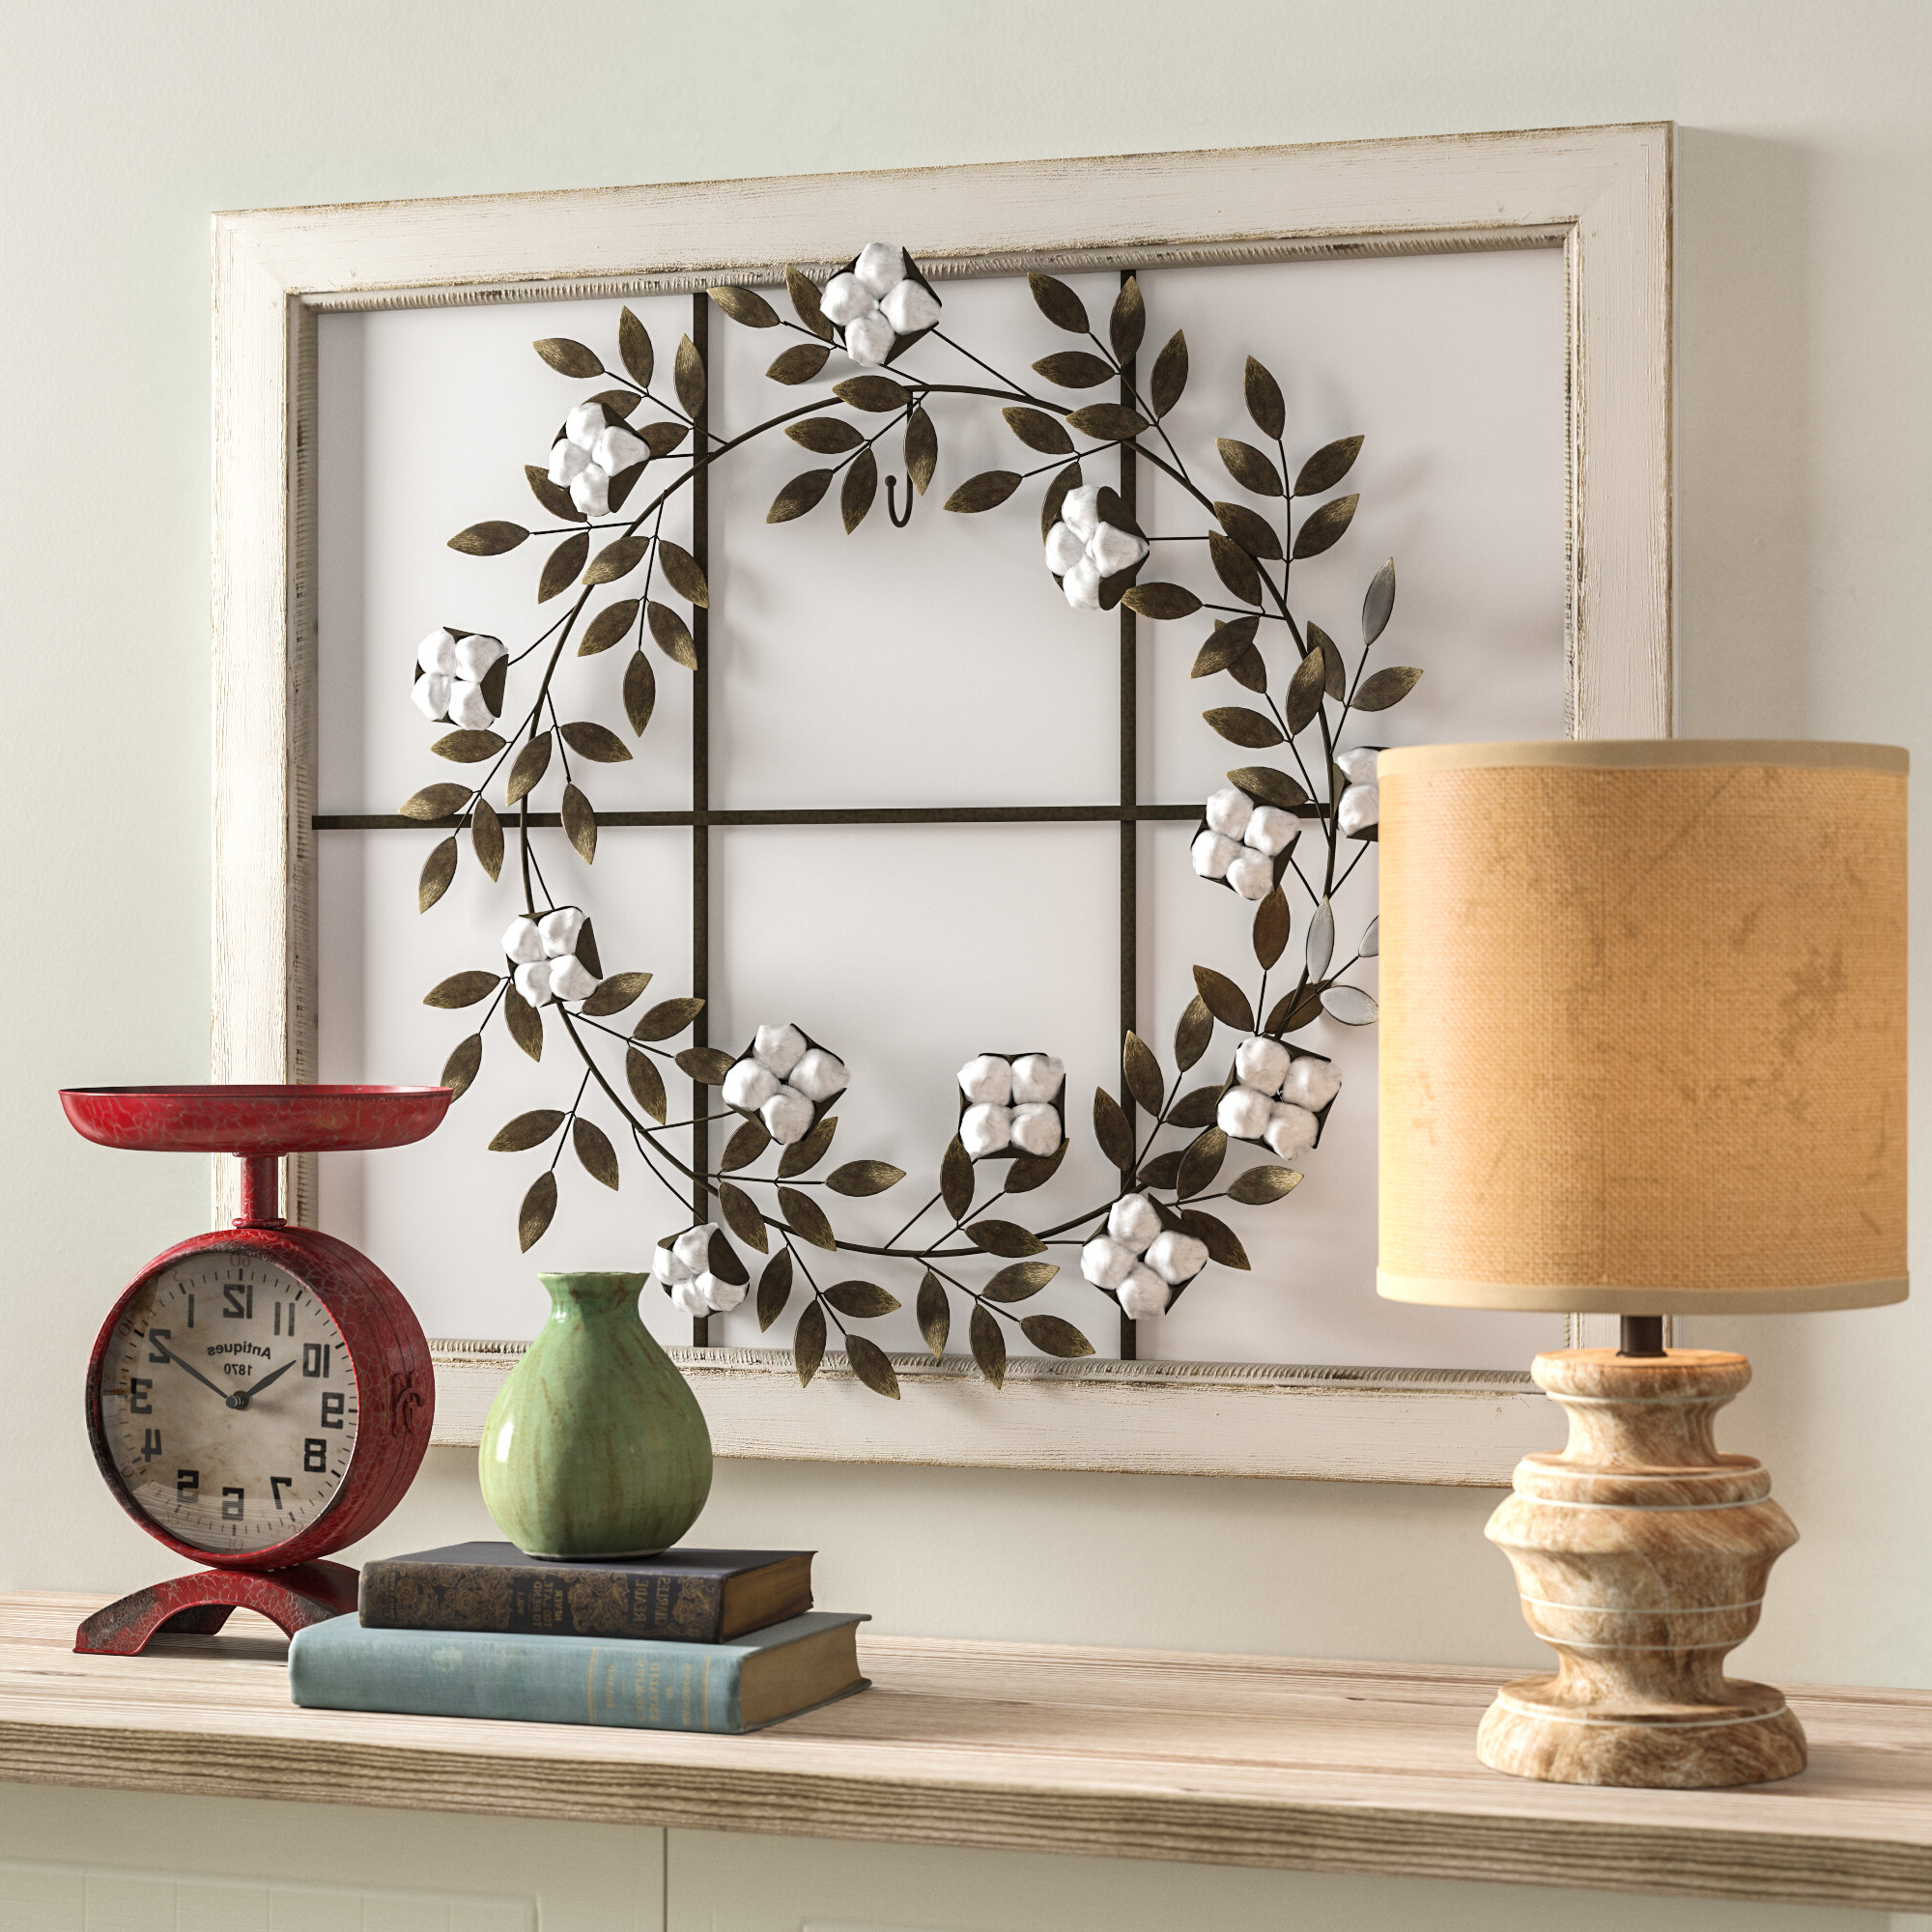 Gracie Oaks Floral Wreath Wood Framed Wall Décor & Reviews (Gallery 1 of 20)